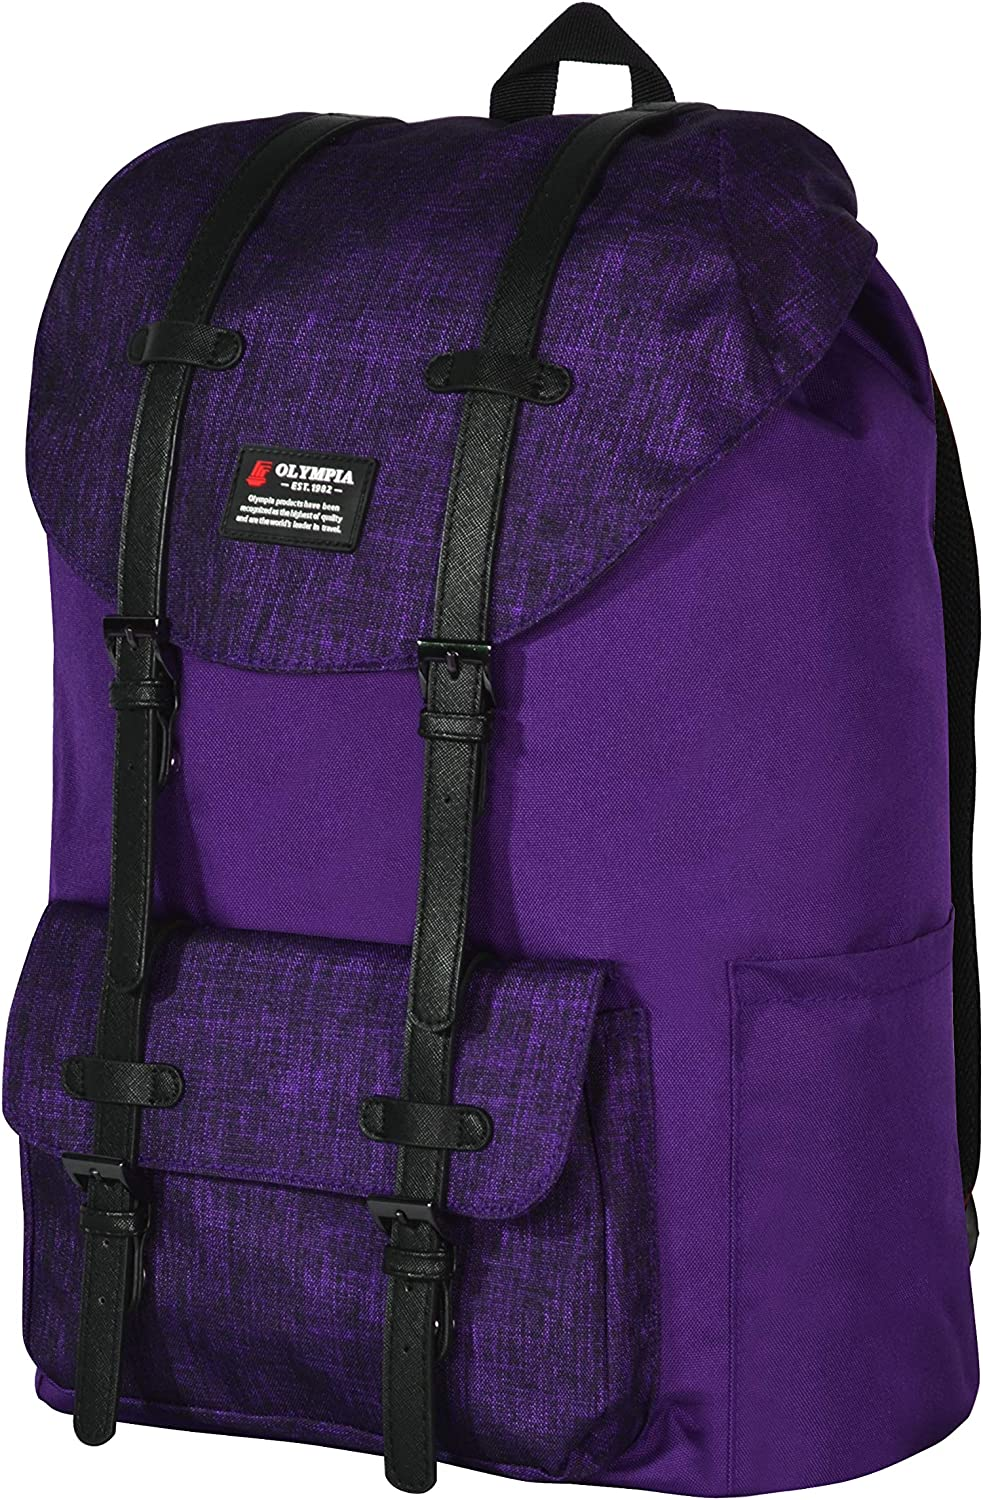 Olympia Cambridge 18 Backpack